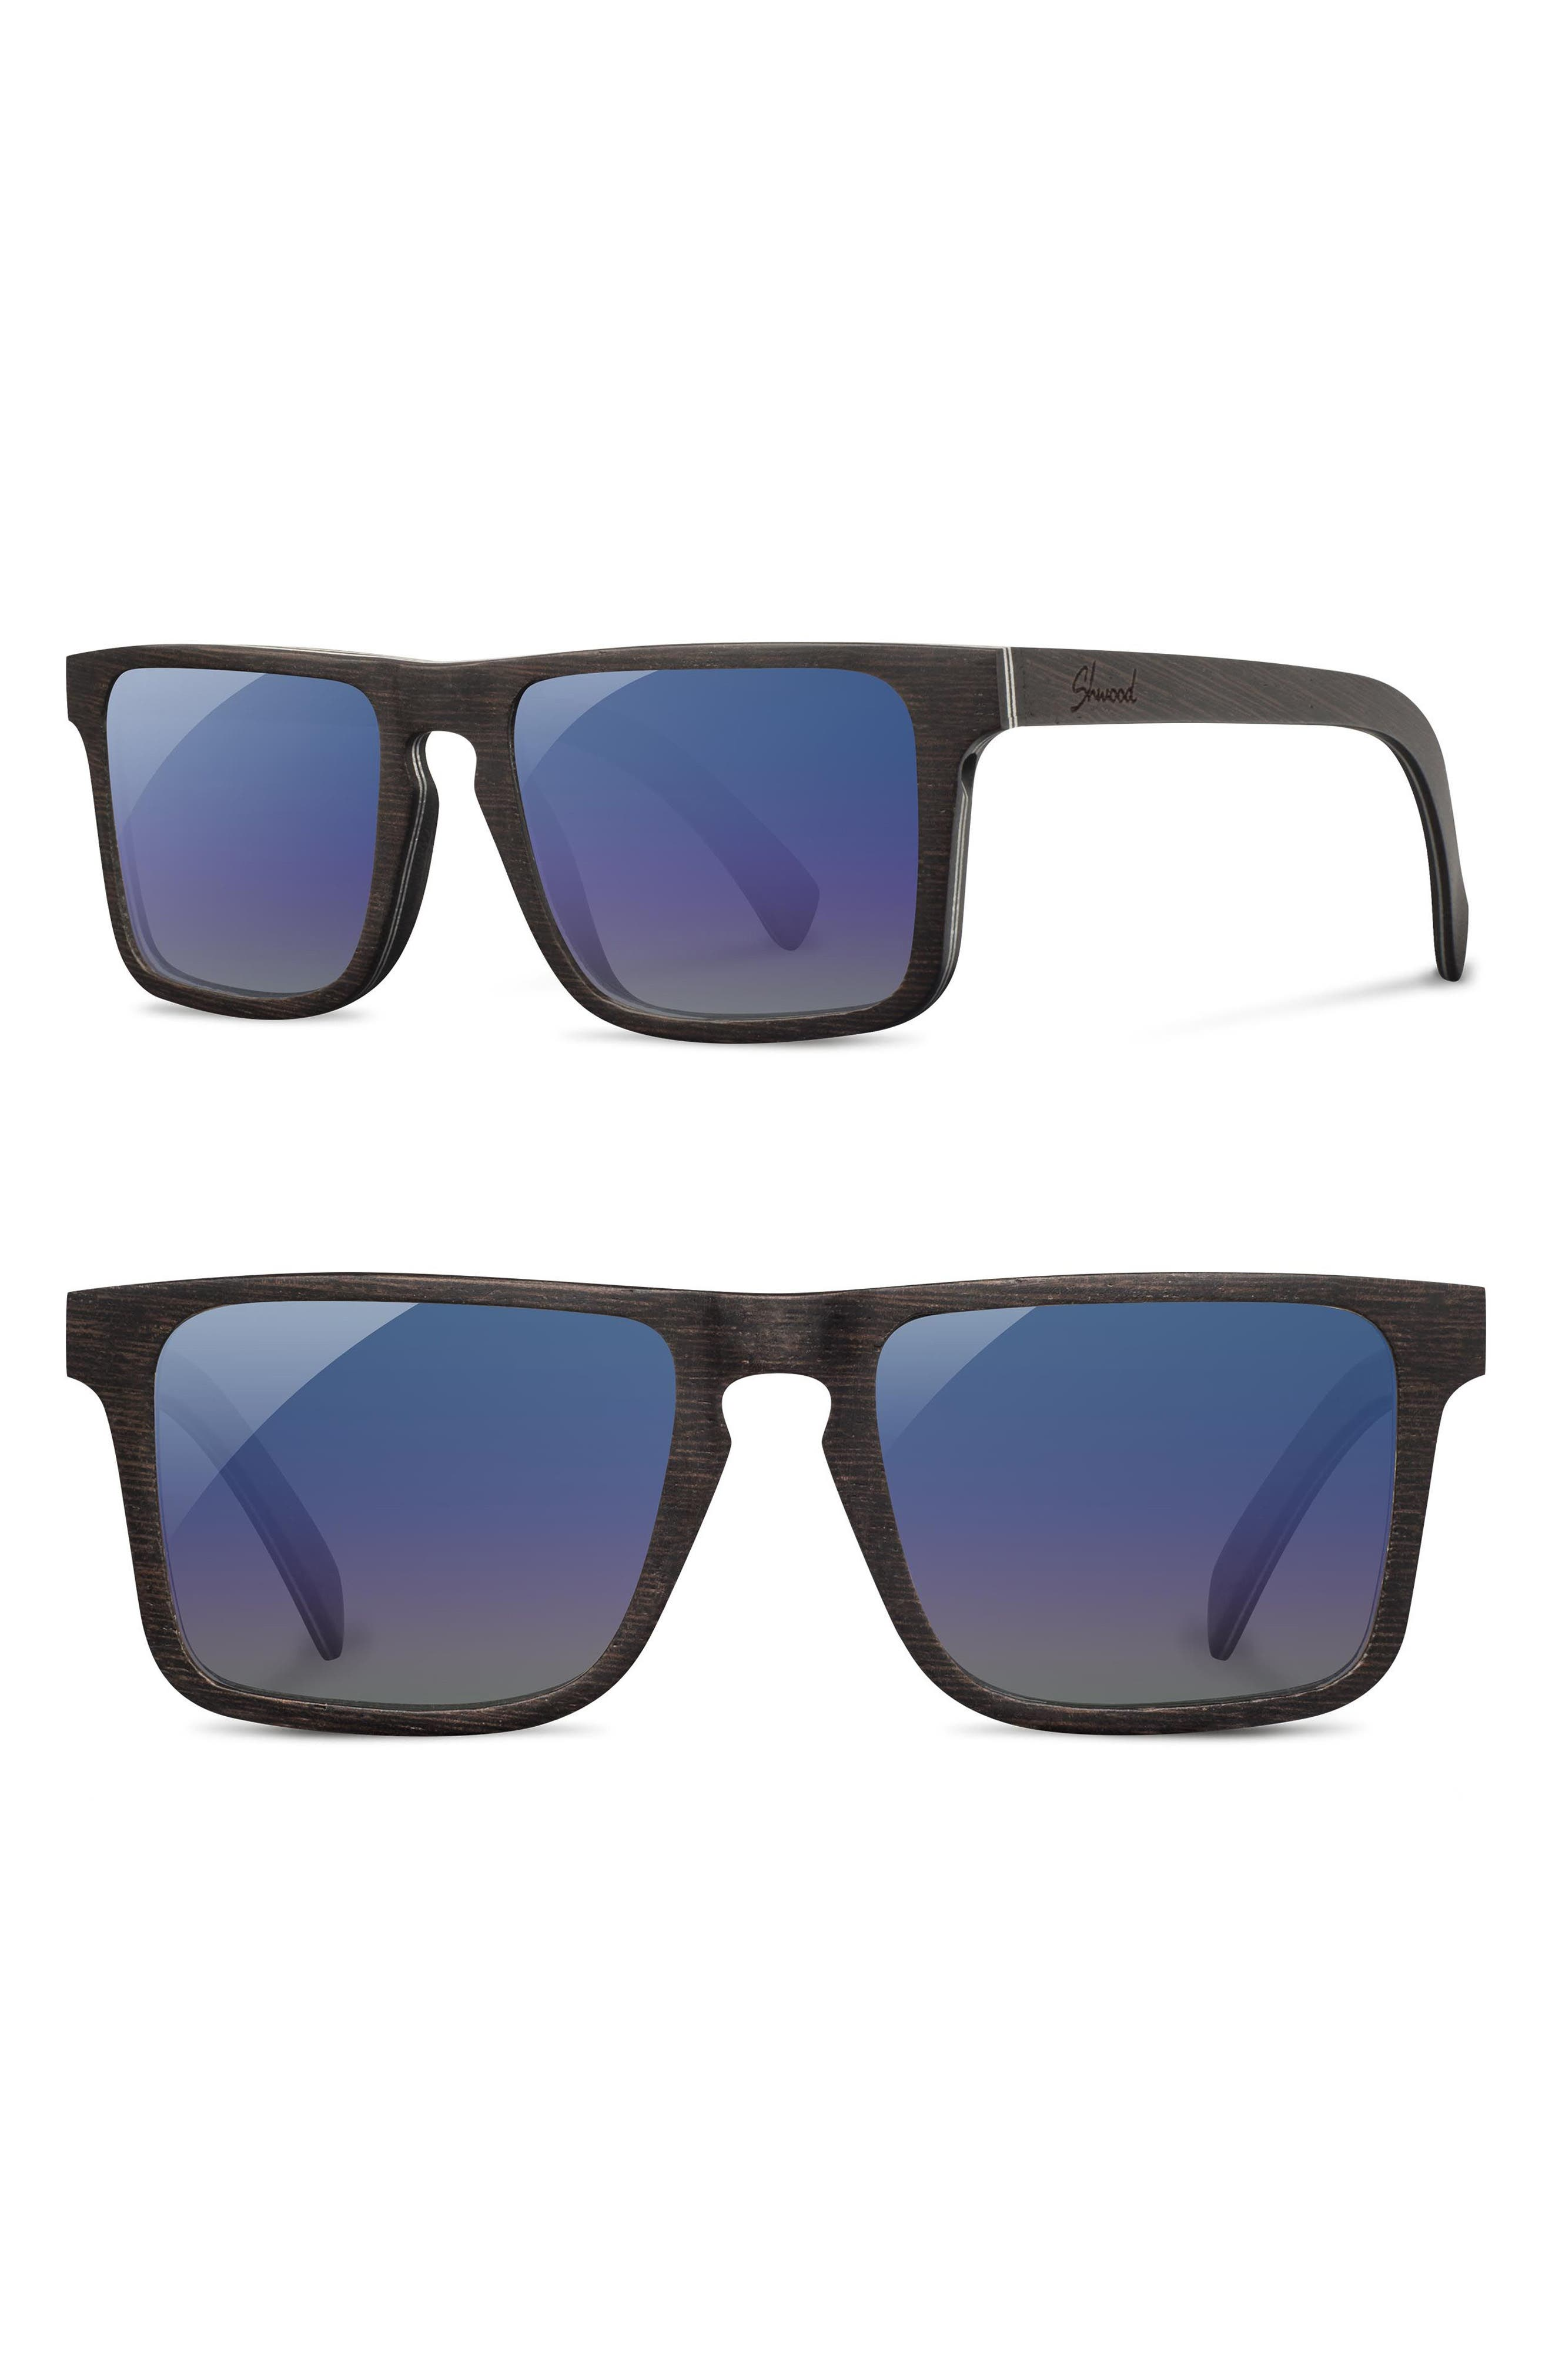 SHWOOD Govy 2 53mm Polarized Wood Sunglasses